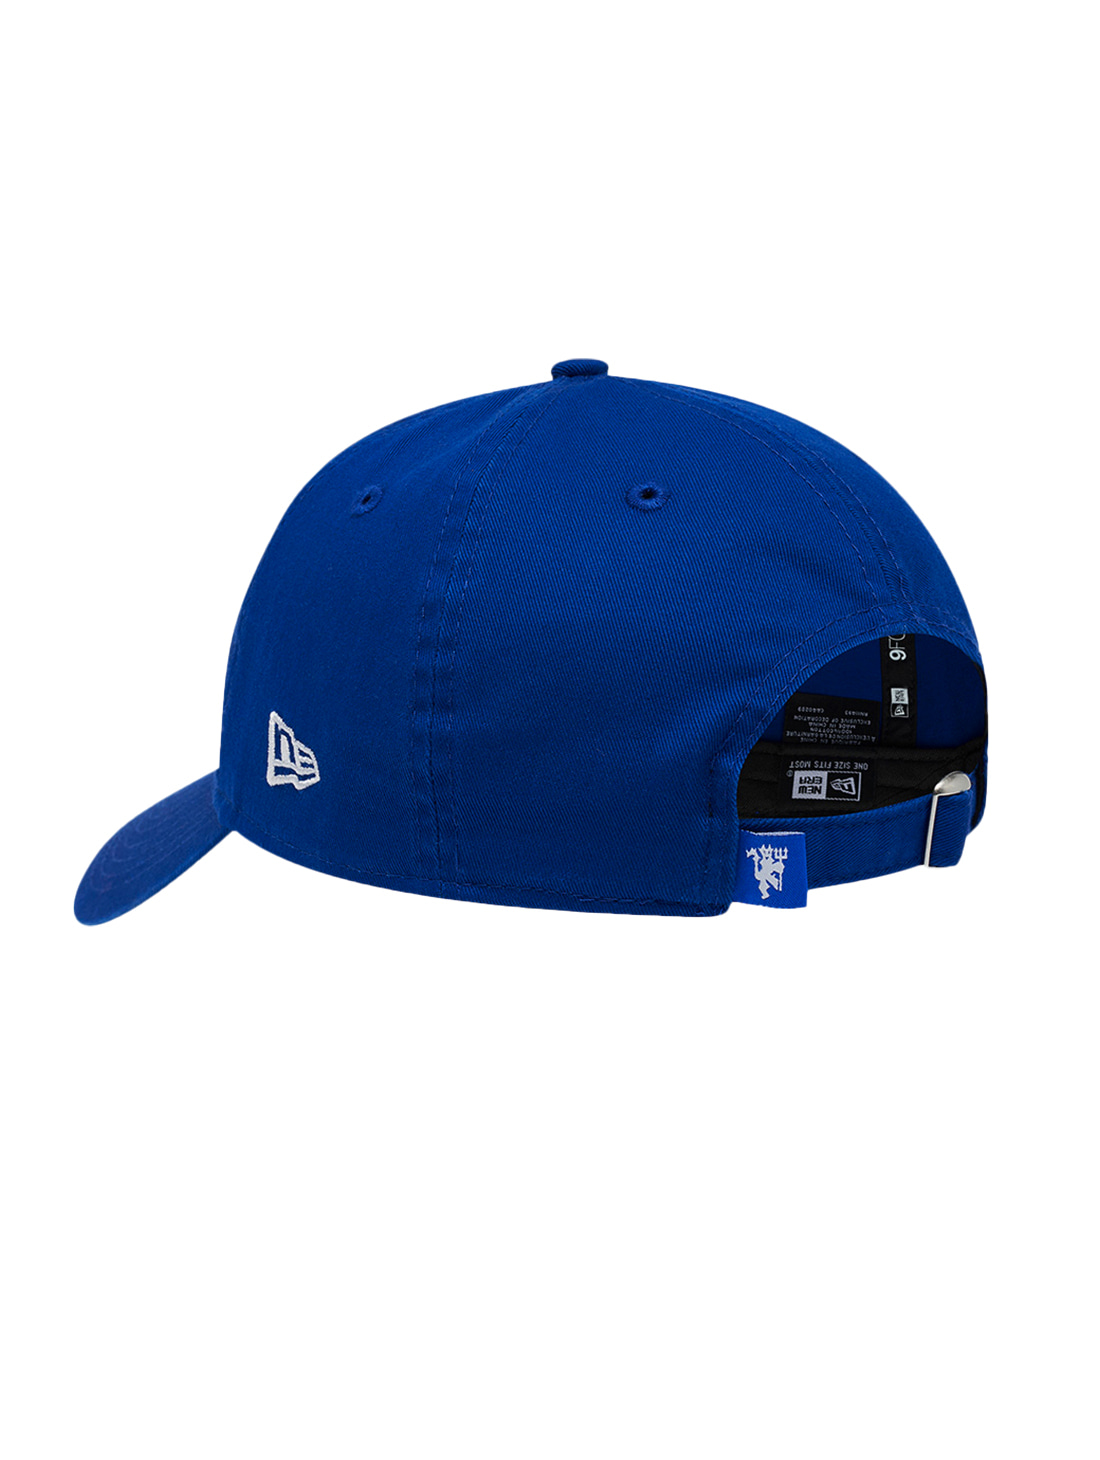 (Sold Out) MAN U 940UNST BALL CAP - BLUE